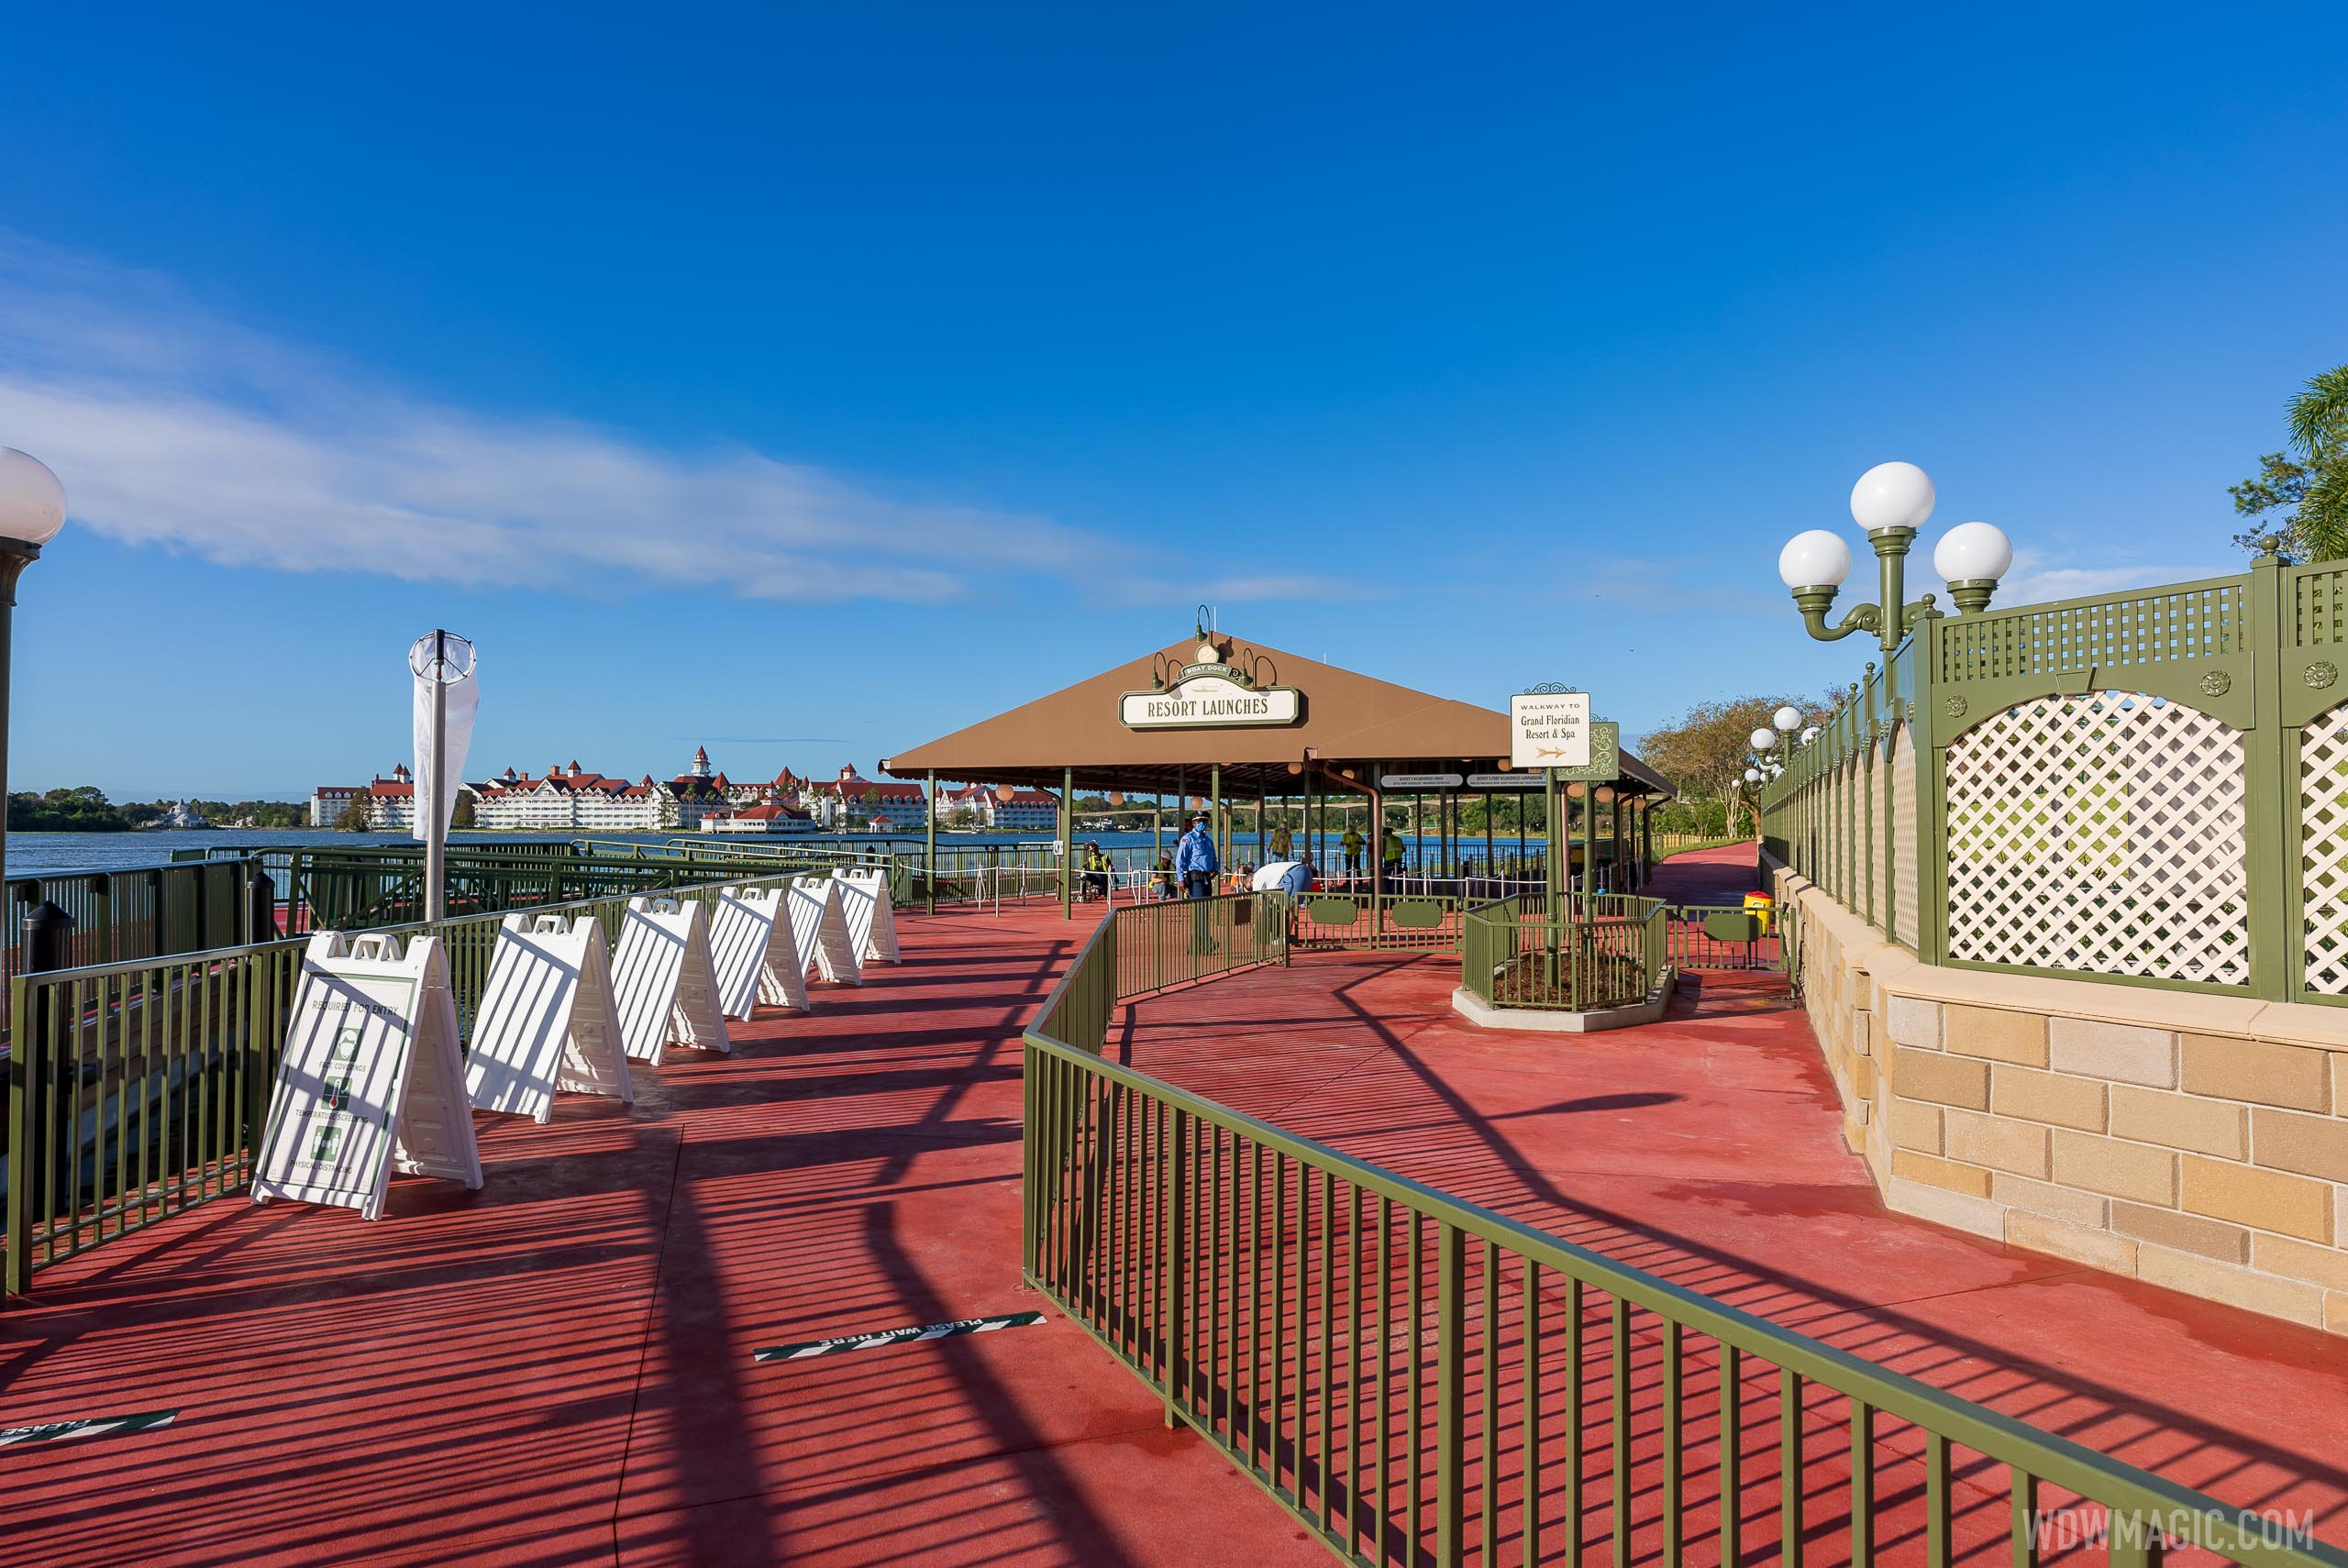 Walkthrough of completed Grand Floridan Resort walkway to Magic Kingdom